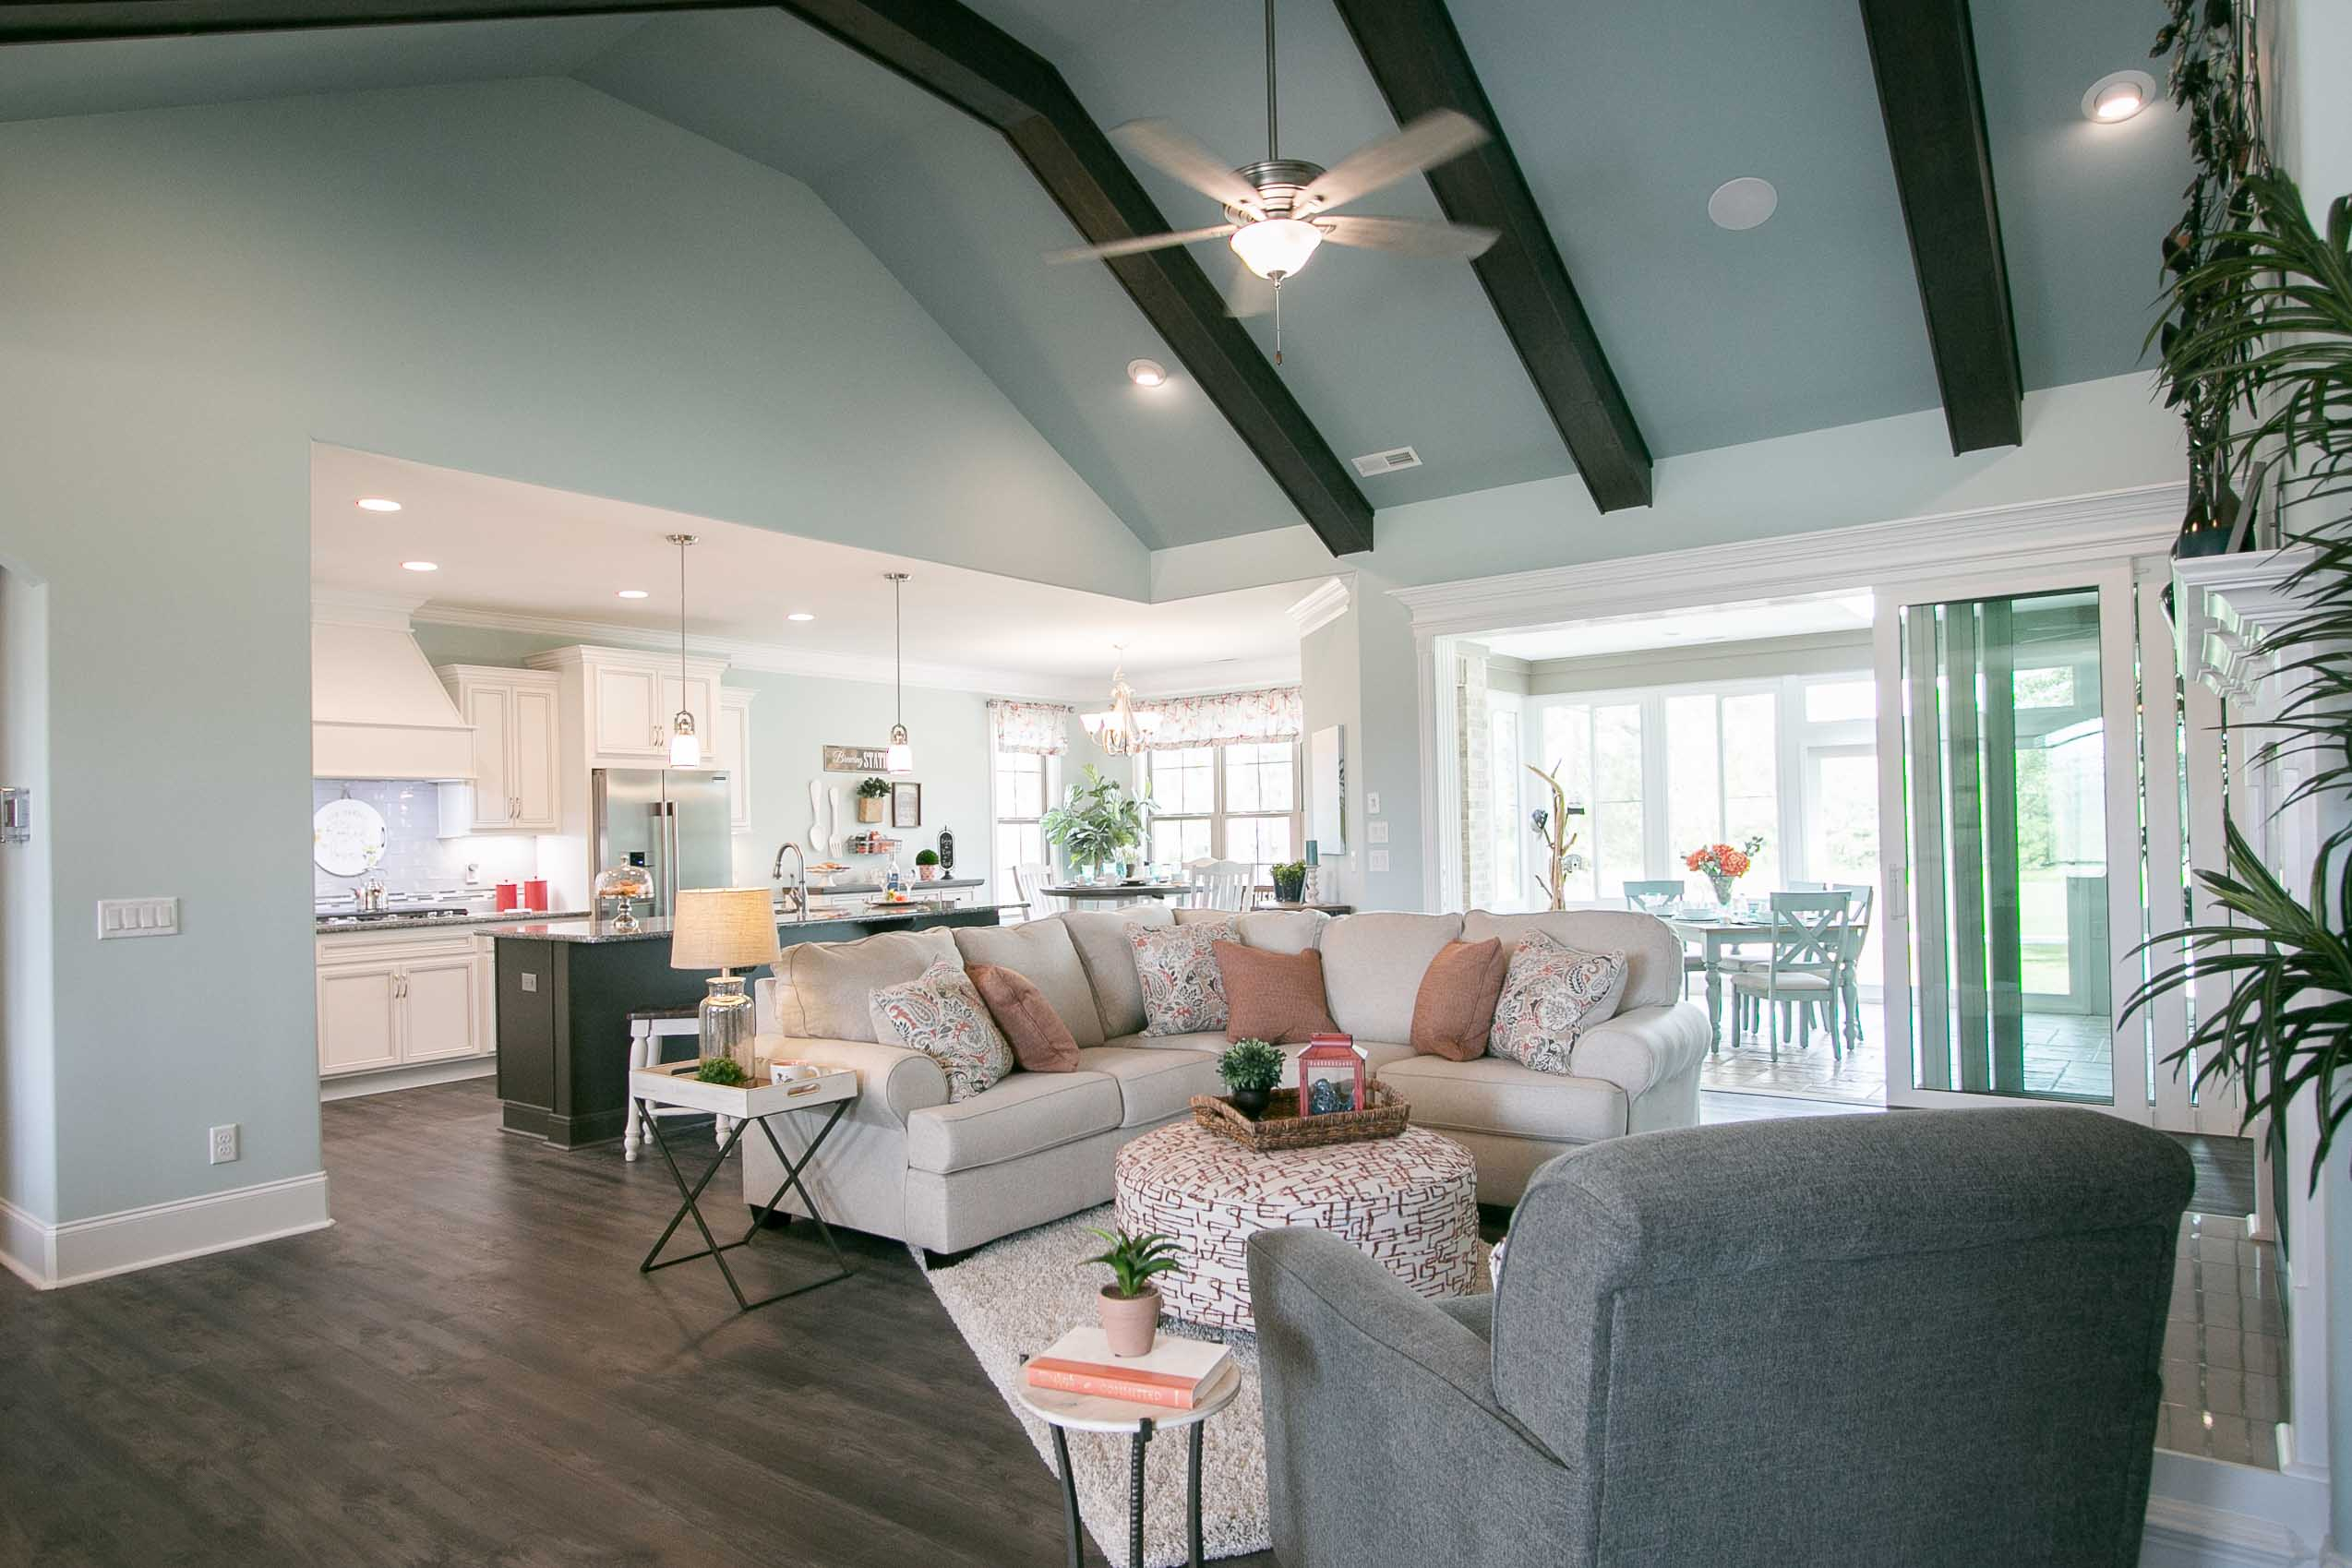 New Construction in Compass Pointe